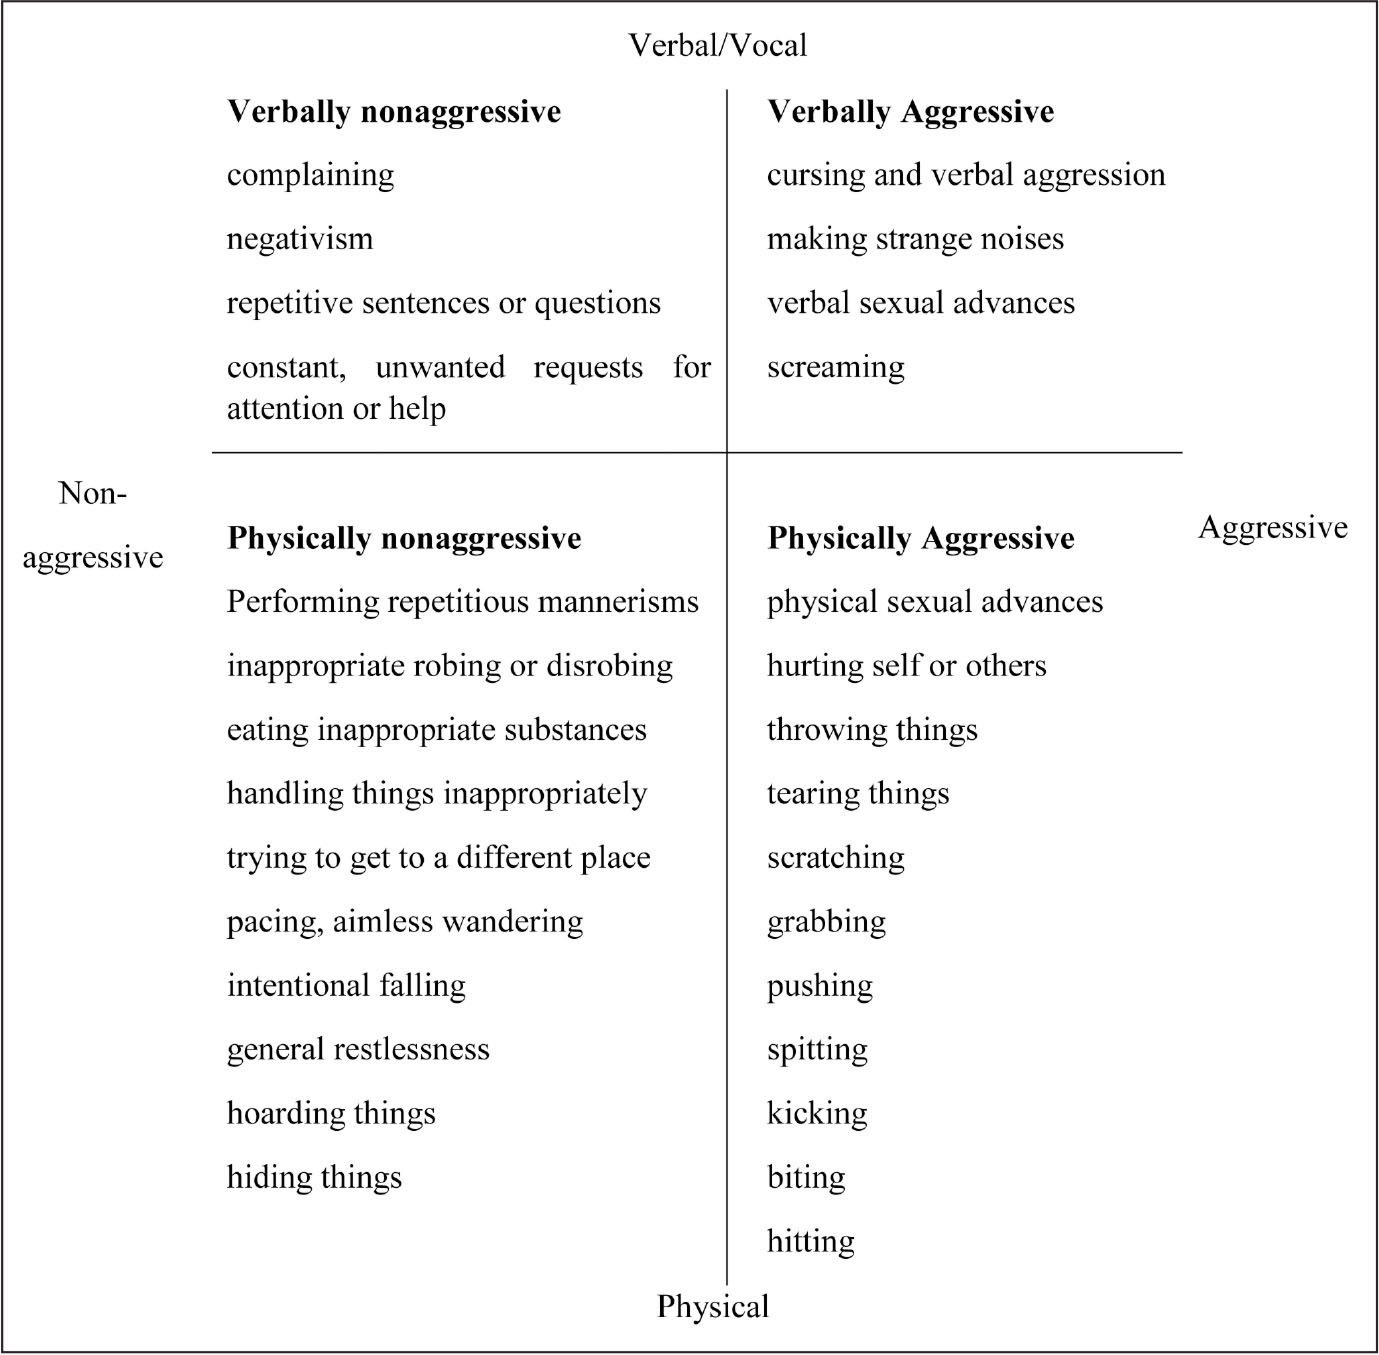 Behavioral and psychological symptoms of dementia behavior categories as defined by and adapted from Cohen-Mansfield (2000).